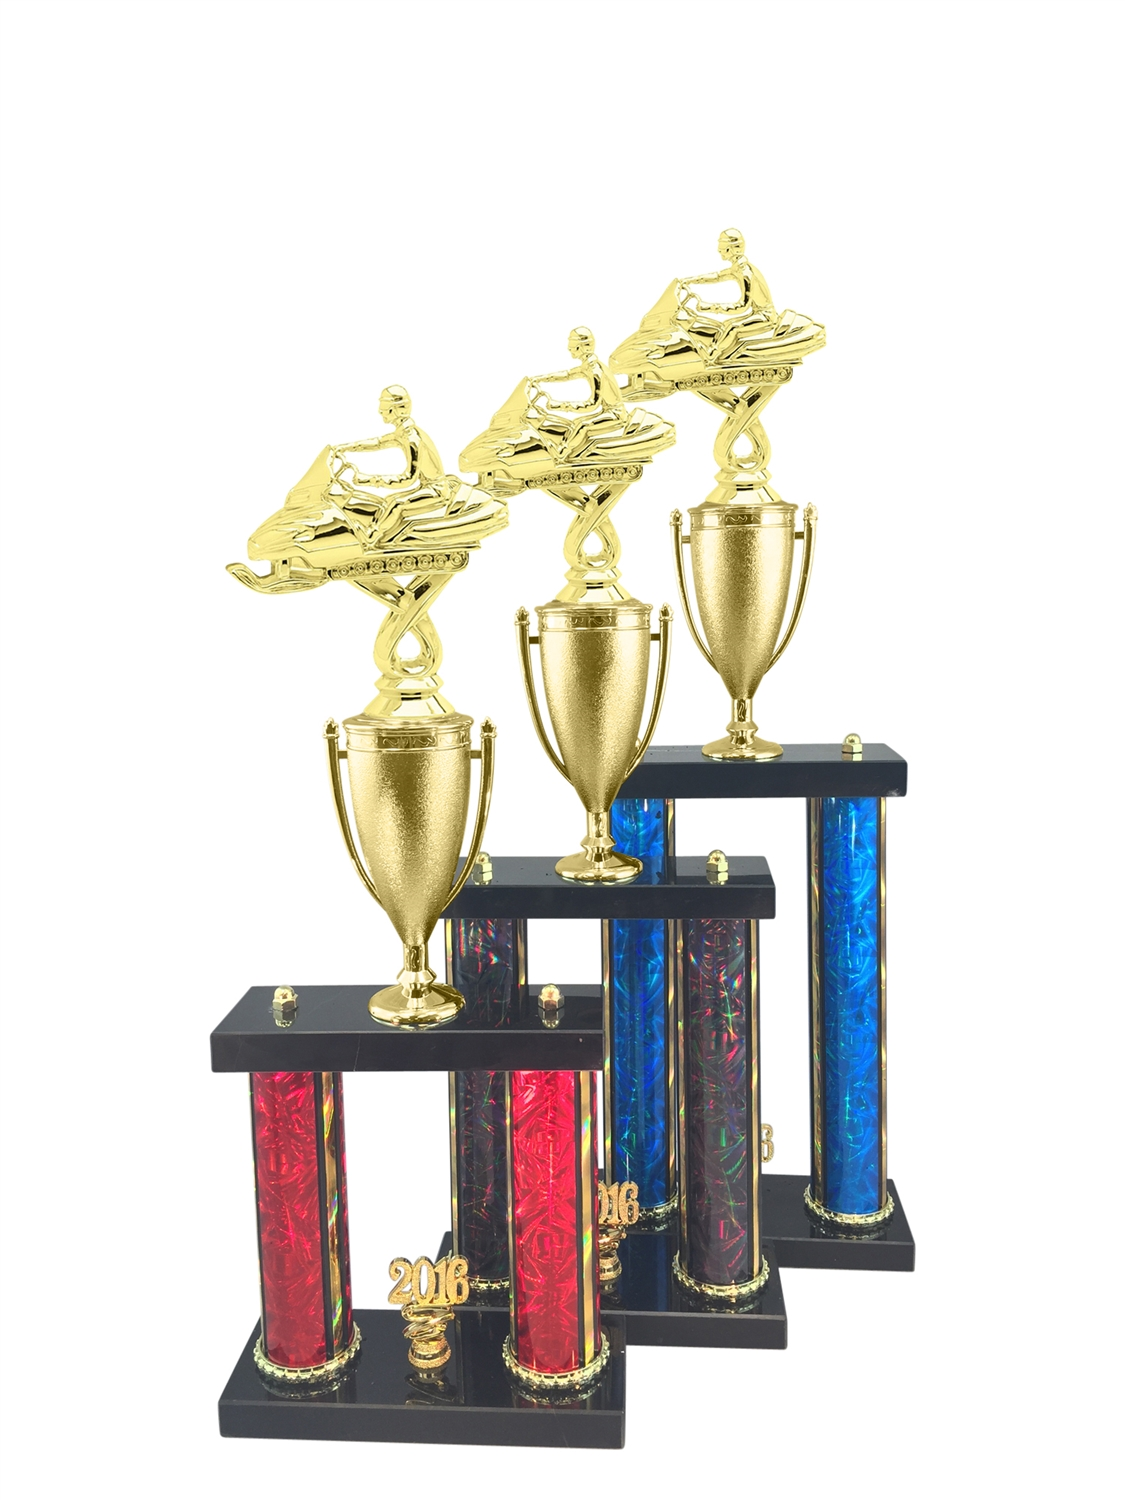 Snowmobile Trophy Available in 11 Color & 3 Size Options